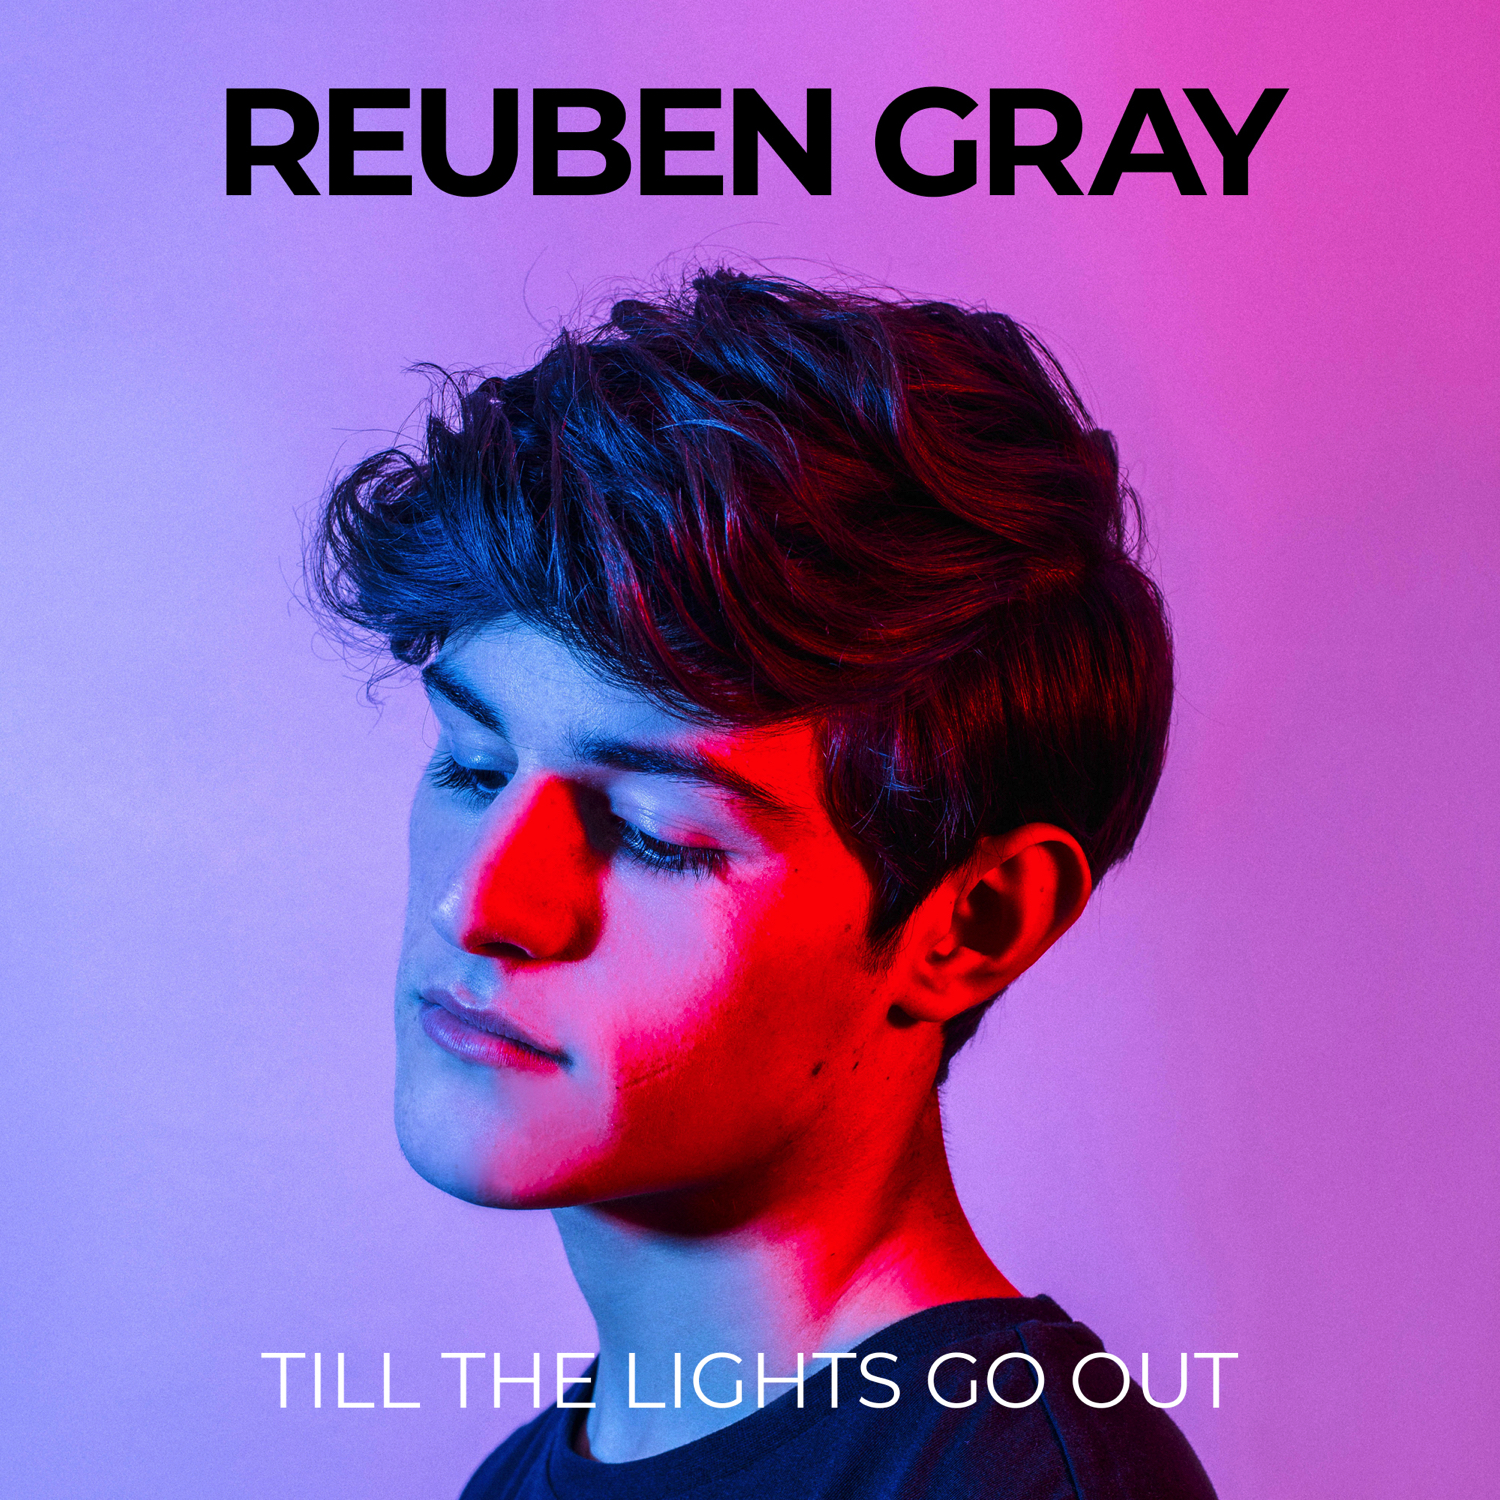 reuben-gray-till-the-lights-go-out-reuben-gray.jpg